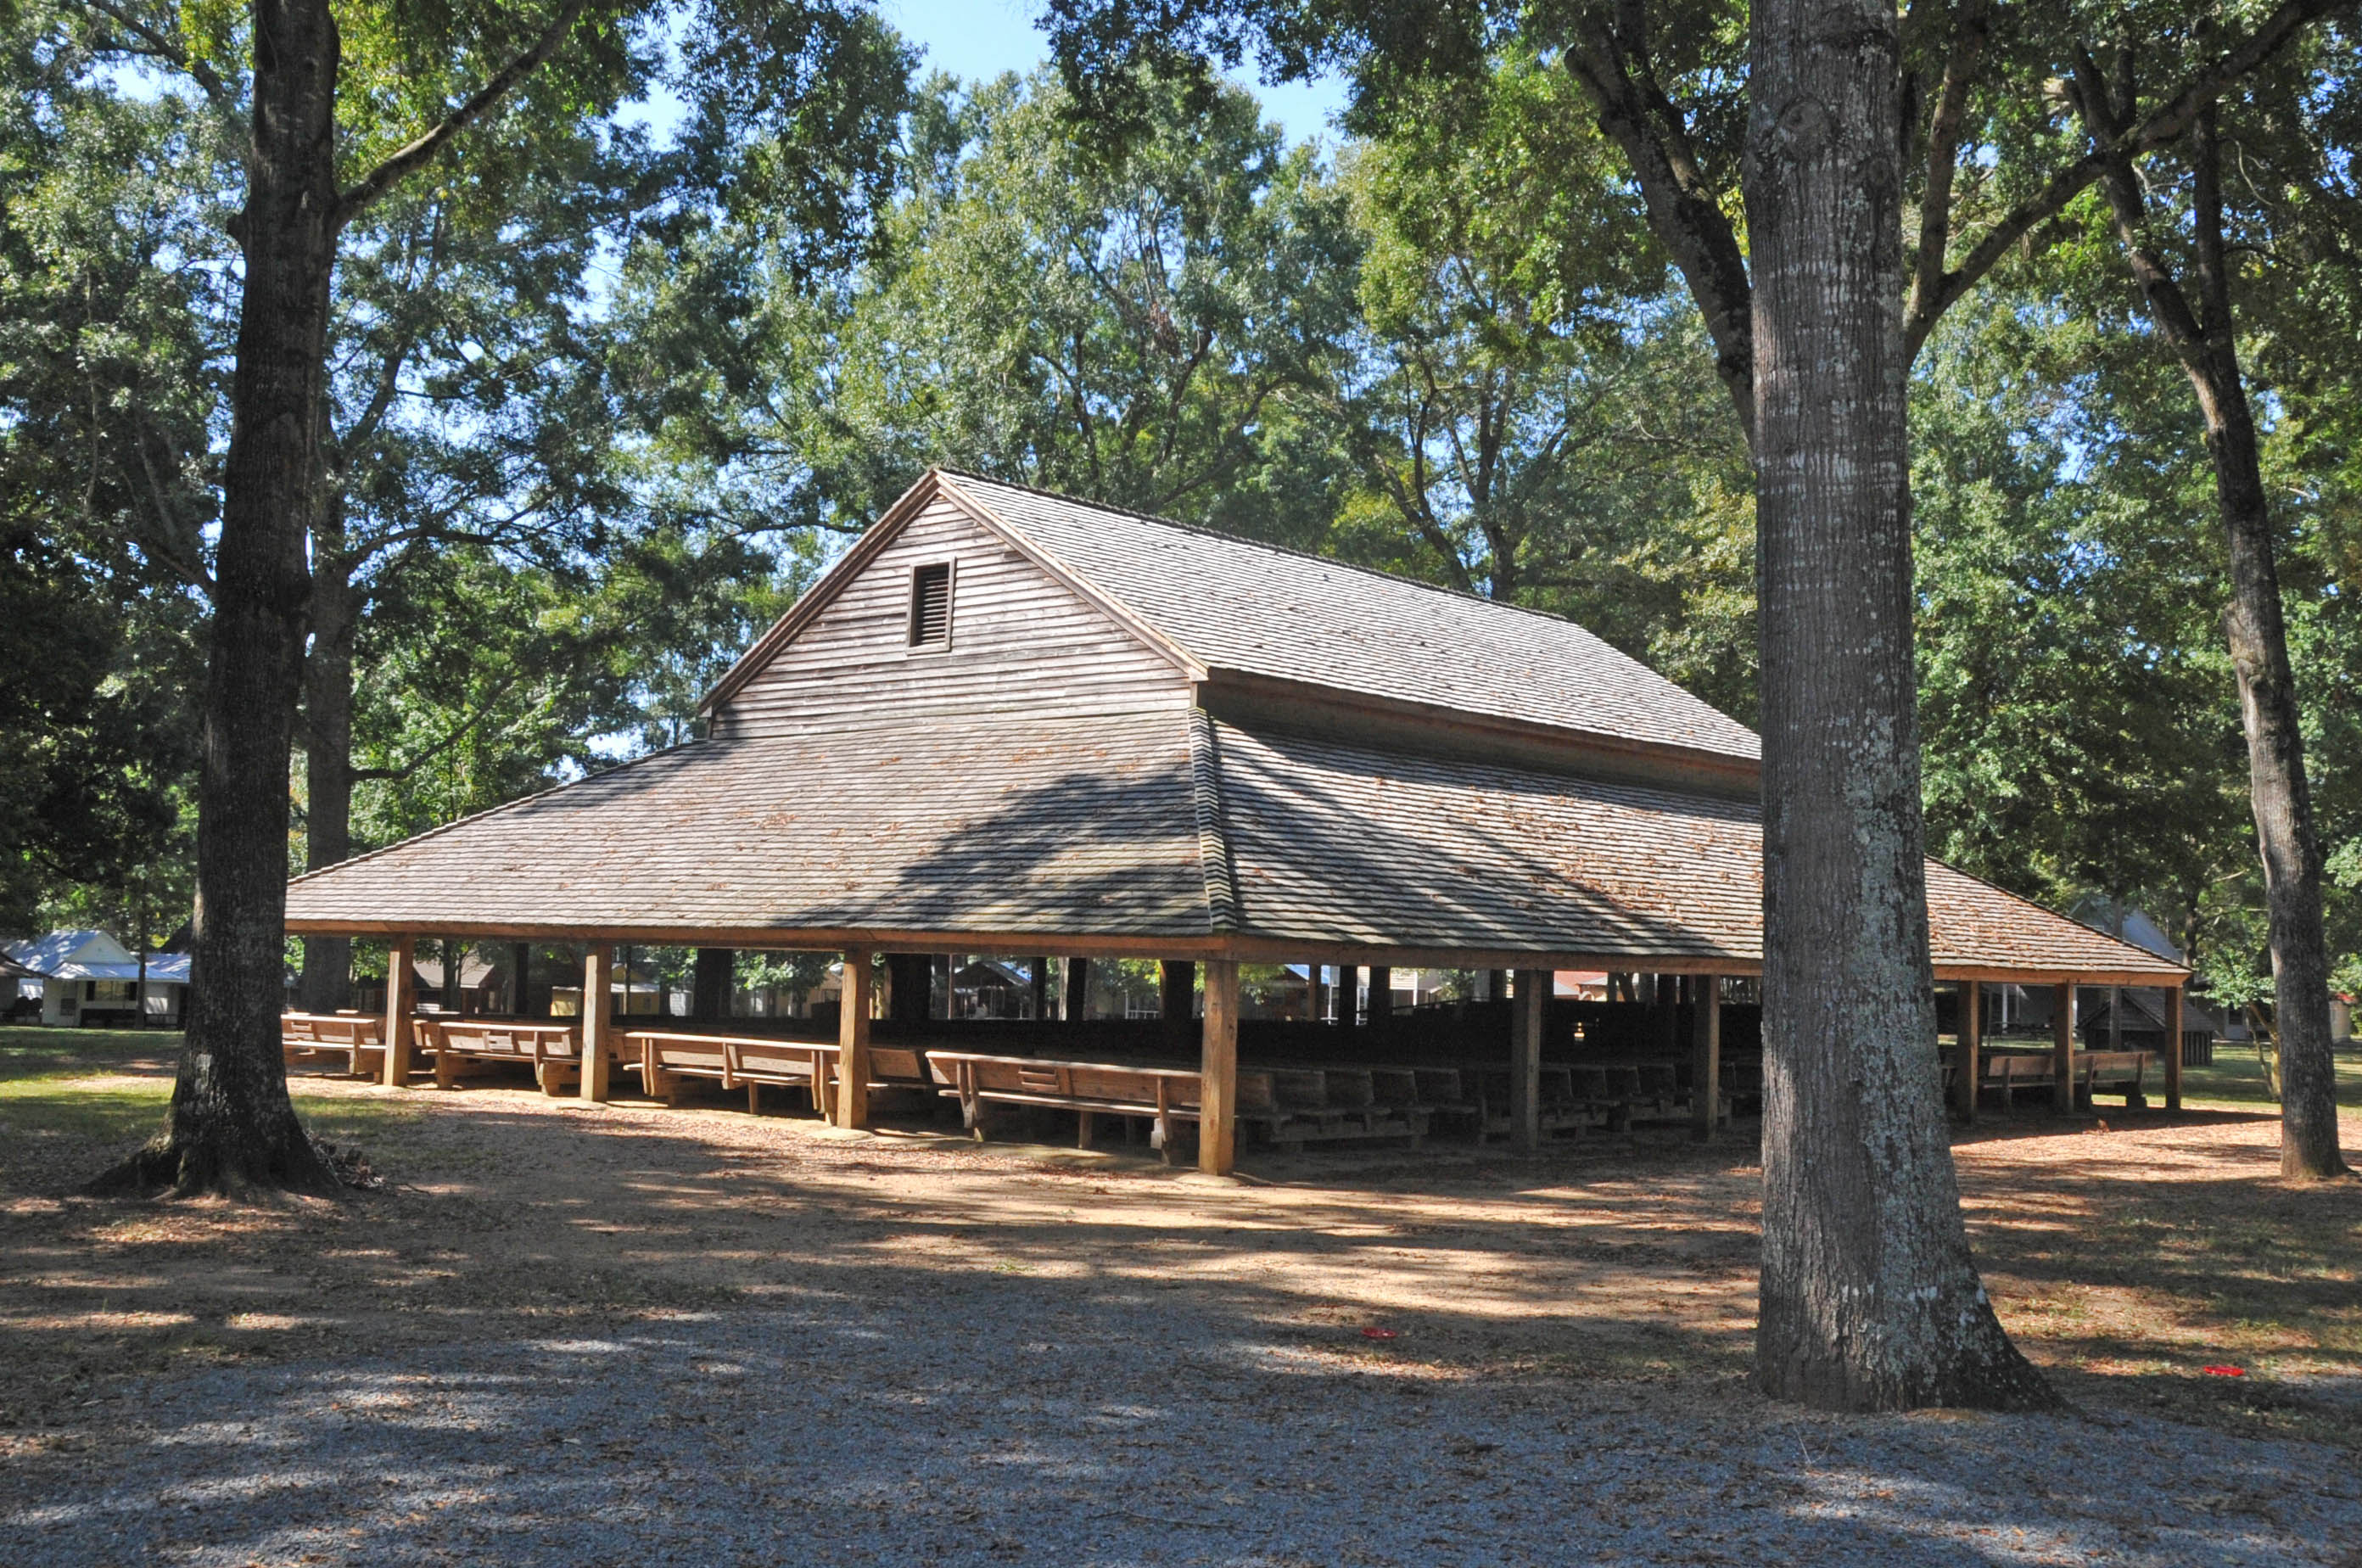 pleasant grove camp meeting ground, union county, nc.jpg